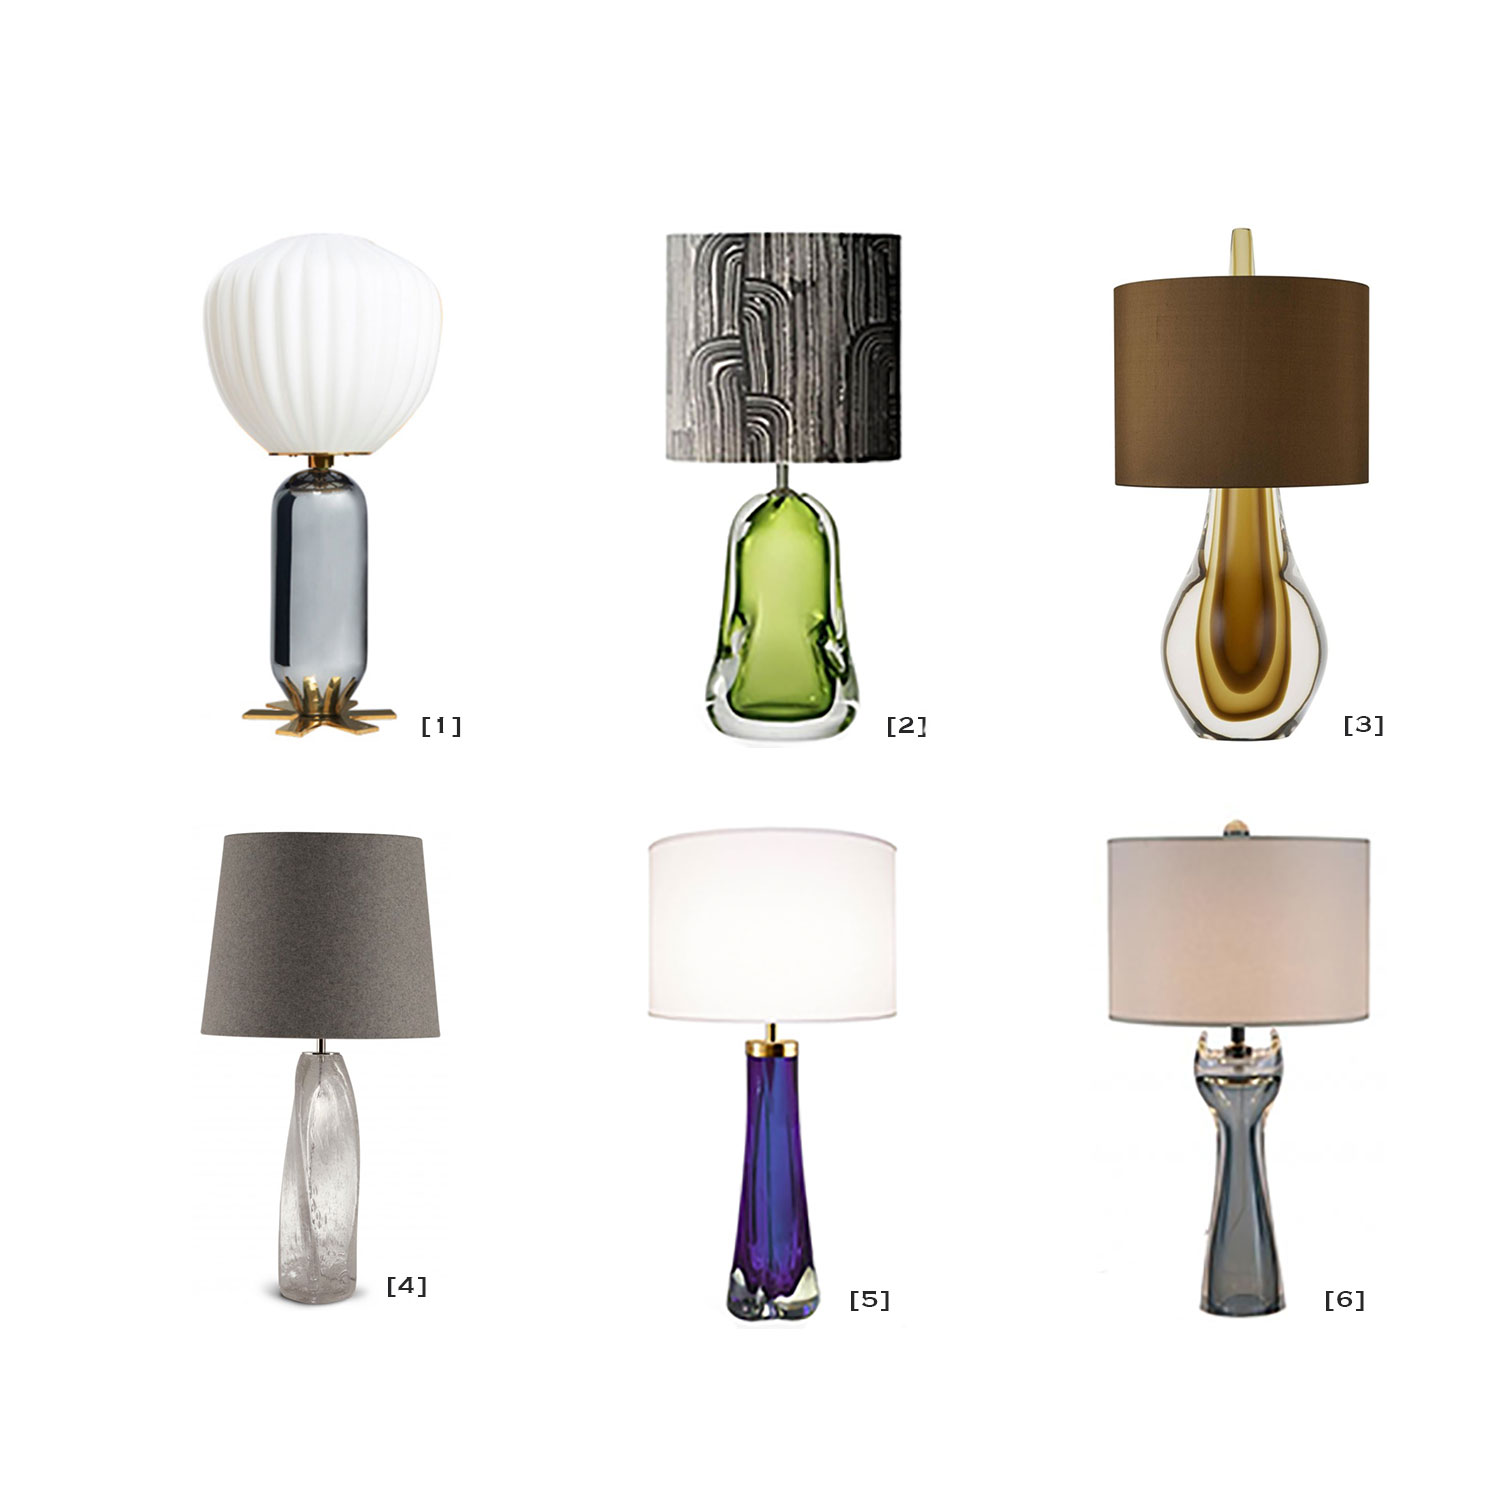 [1]  India Mahdavi lamp . [2]  Green glass lamp . [3]  Cameron Peters lamp . [4]  Porta Romana lamp . [5]  Craig Ven Den Brulle lamp . [6]  Van den Akker Studio lamp .